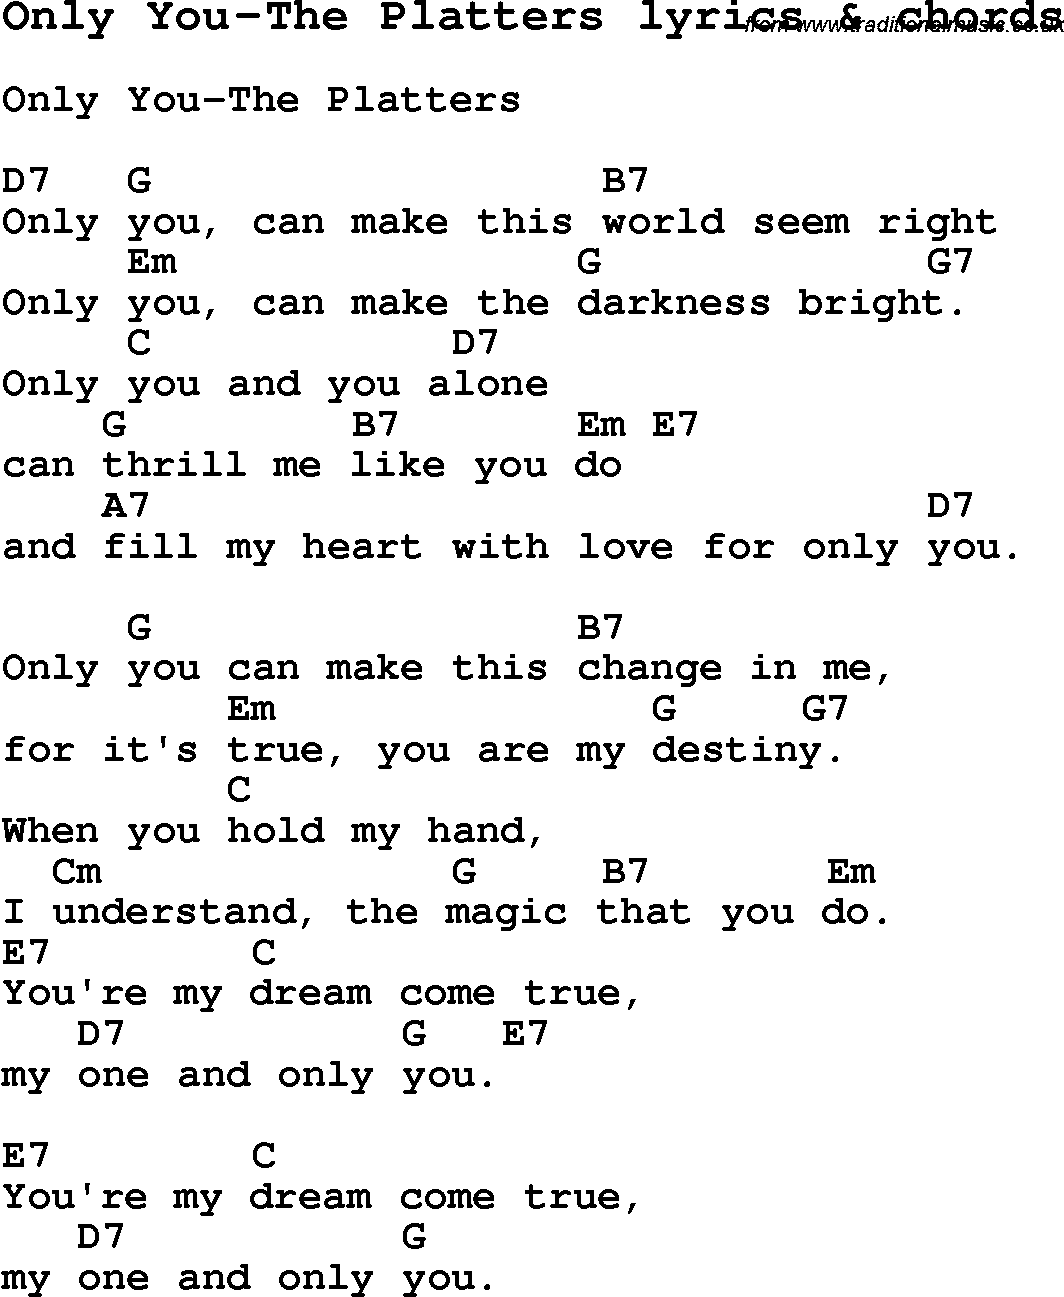 Love Song Lyrics for:Only You-The Platters with chords.